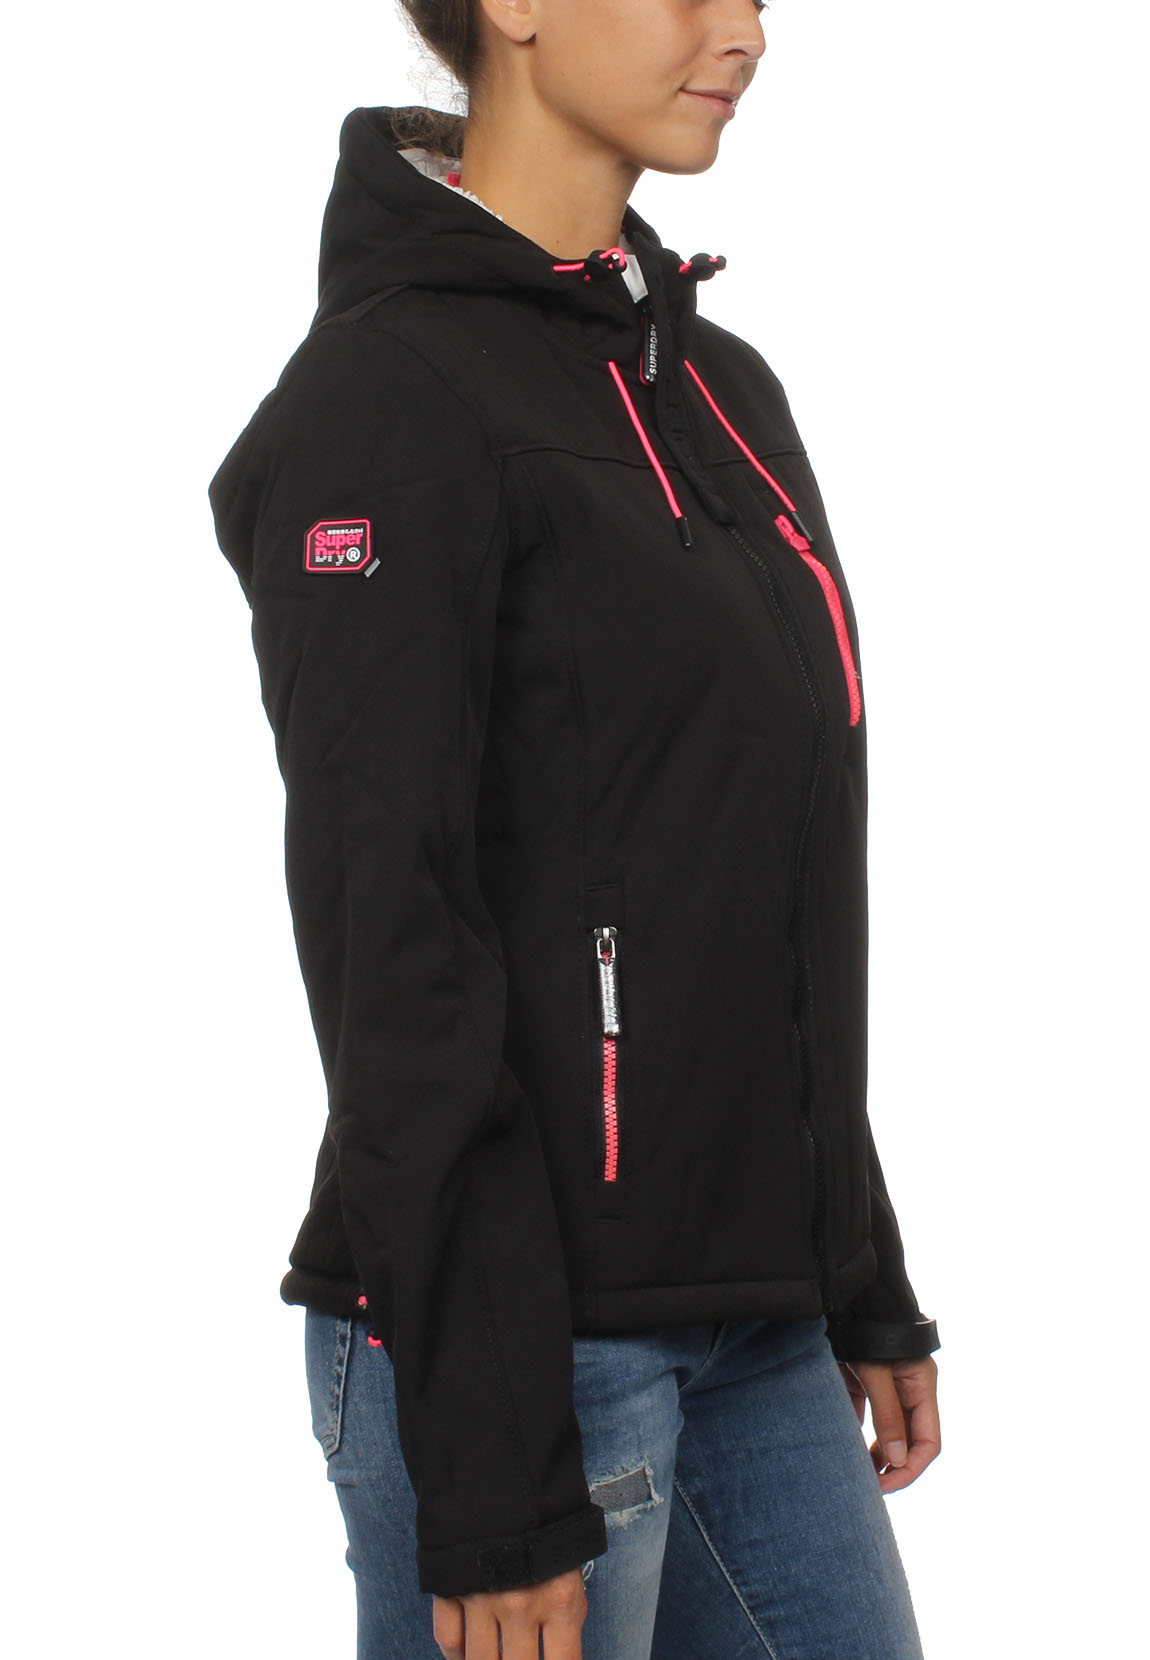 promo code cde09 08496 Superdry Jacke Damen HOODED WINTER WINDTREKKER Black Fluro Pink